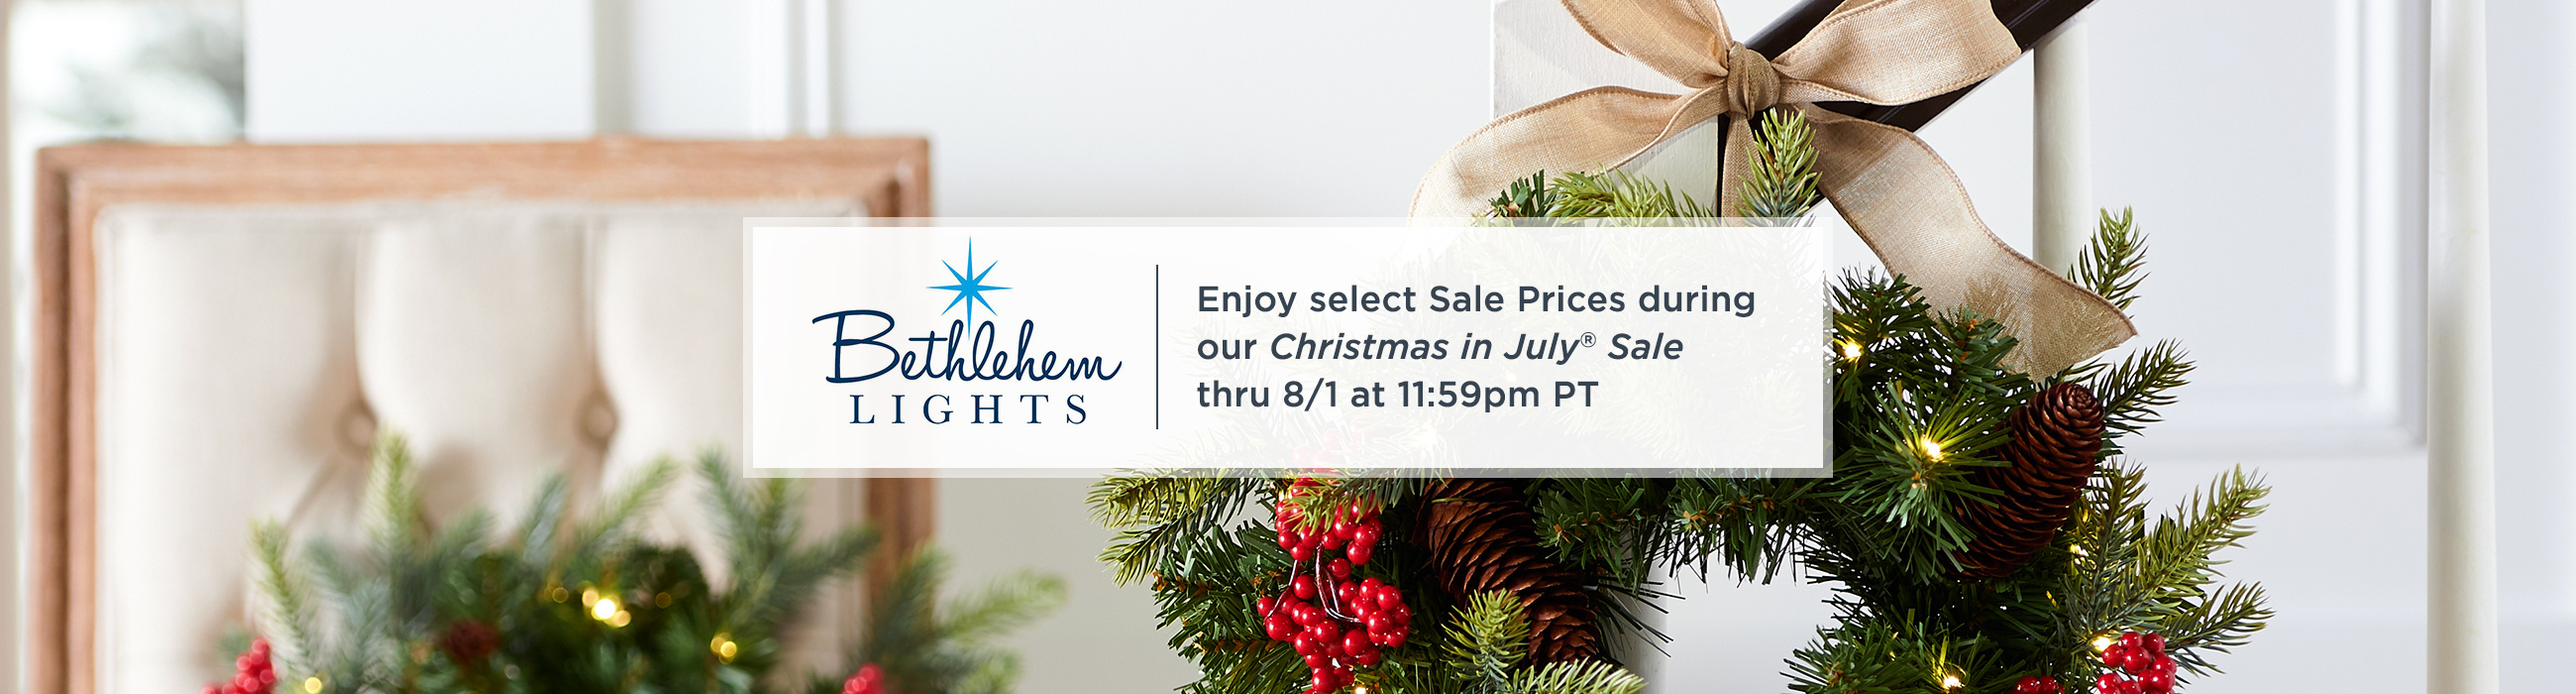 Bethlehem Lights. Enjoy select Sale Prices during our Christmas in July® Sale thru 8/1 at 11:59pm PT